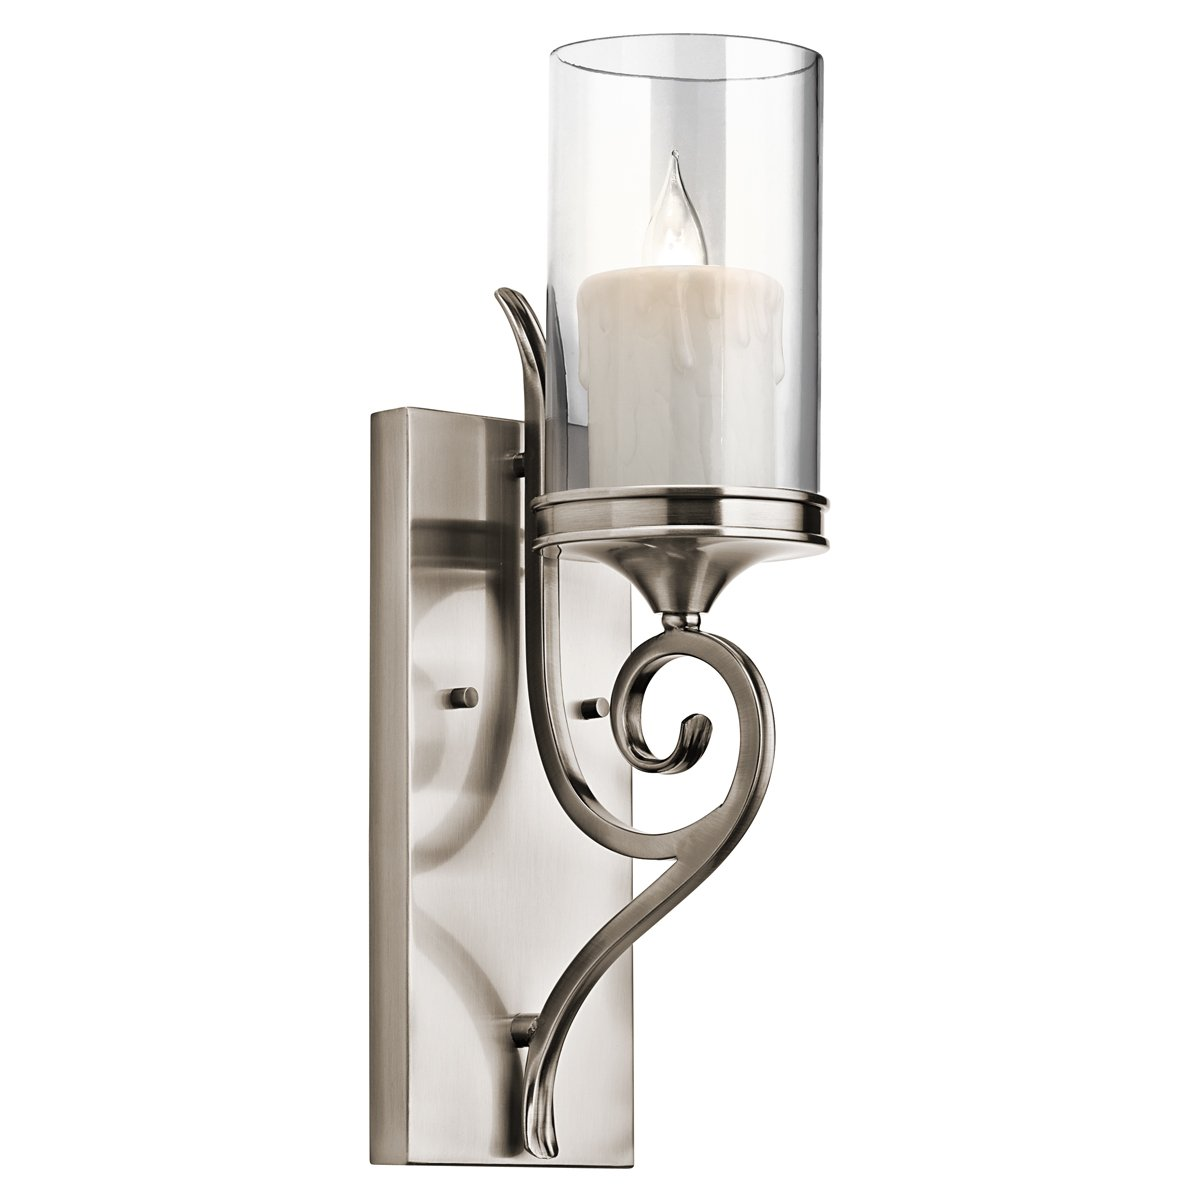 Kichler 45362clp Lara Wall Sconce 1 Light Classic Pewter Silver